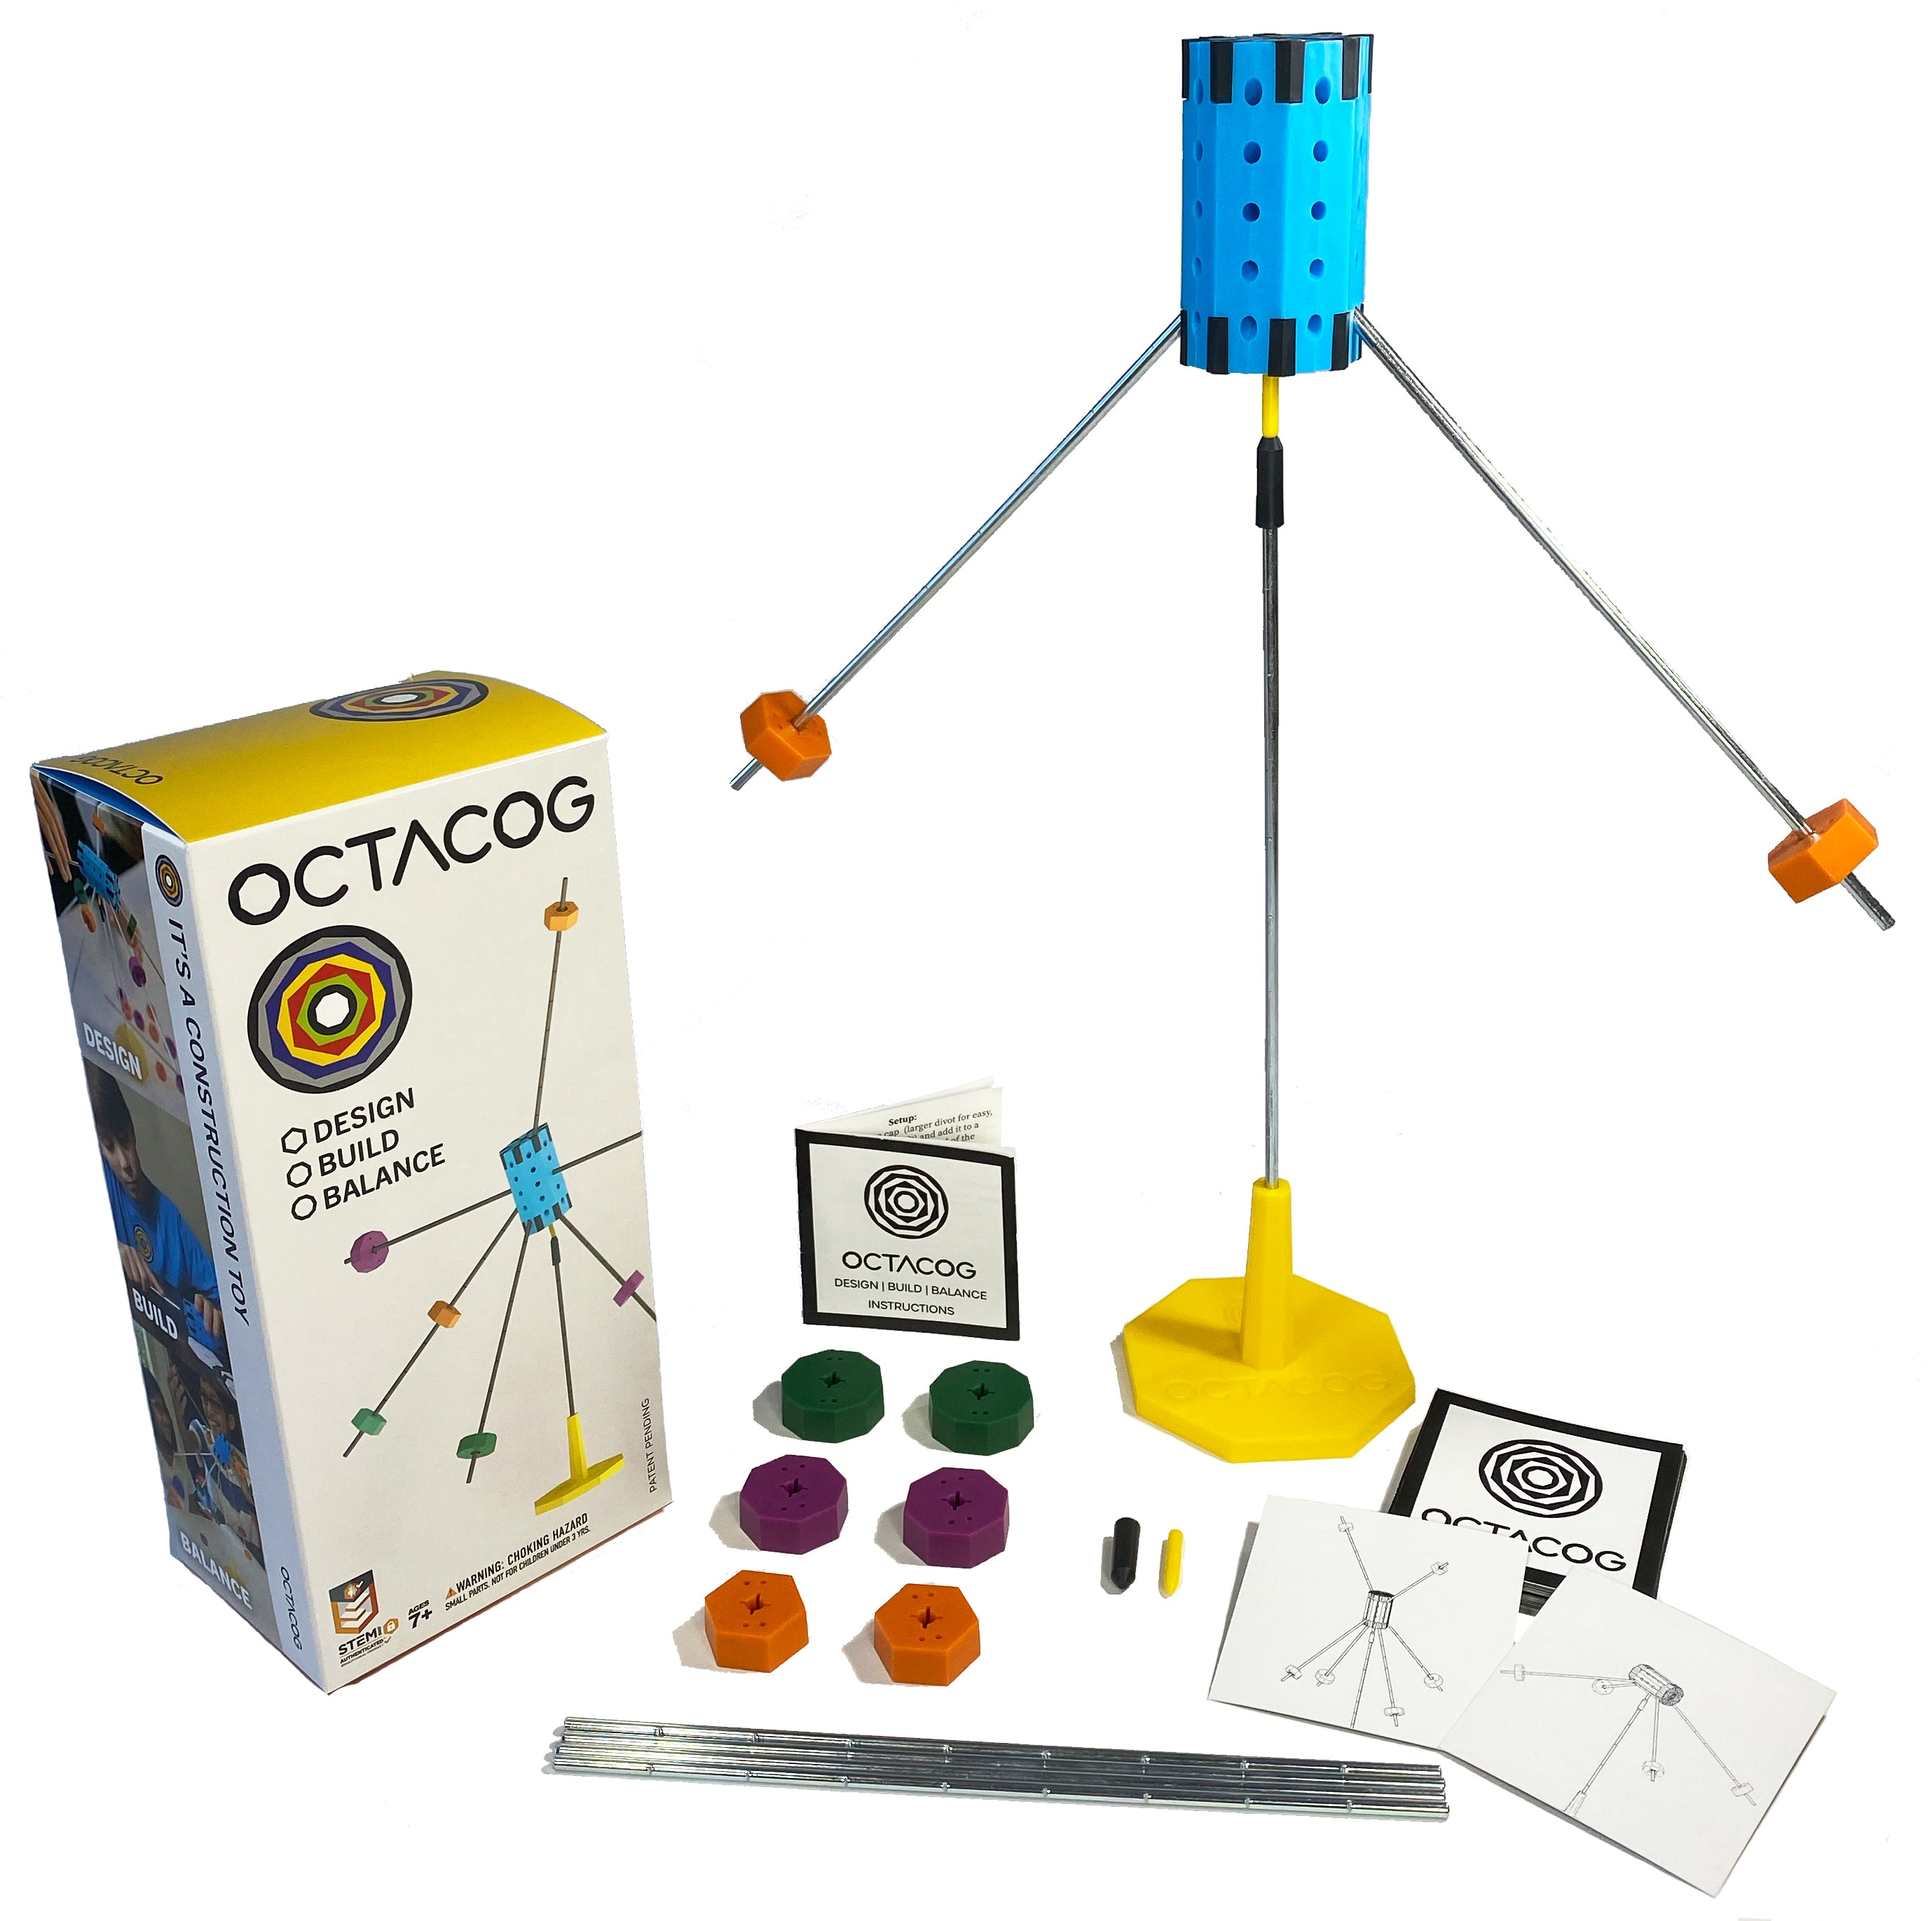 Octacog: Balance Construction Toy and Game